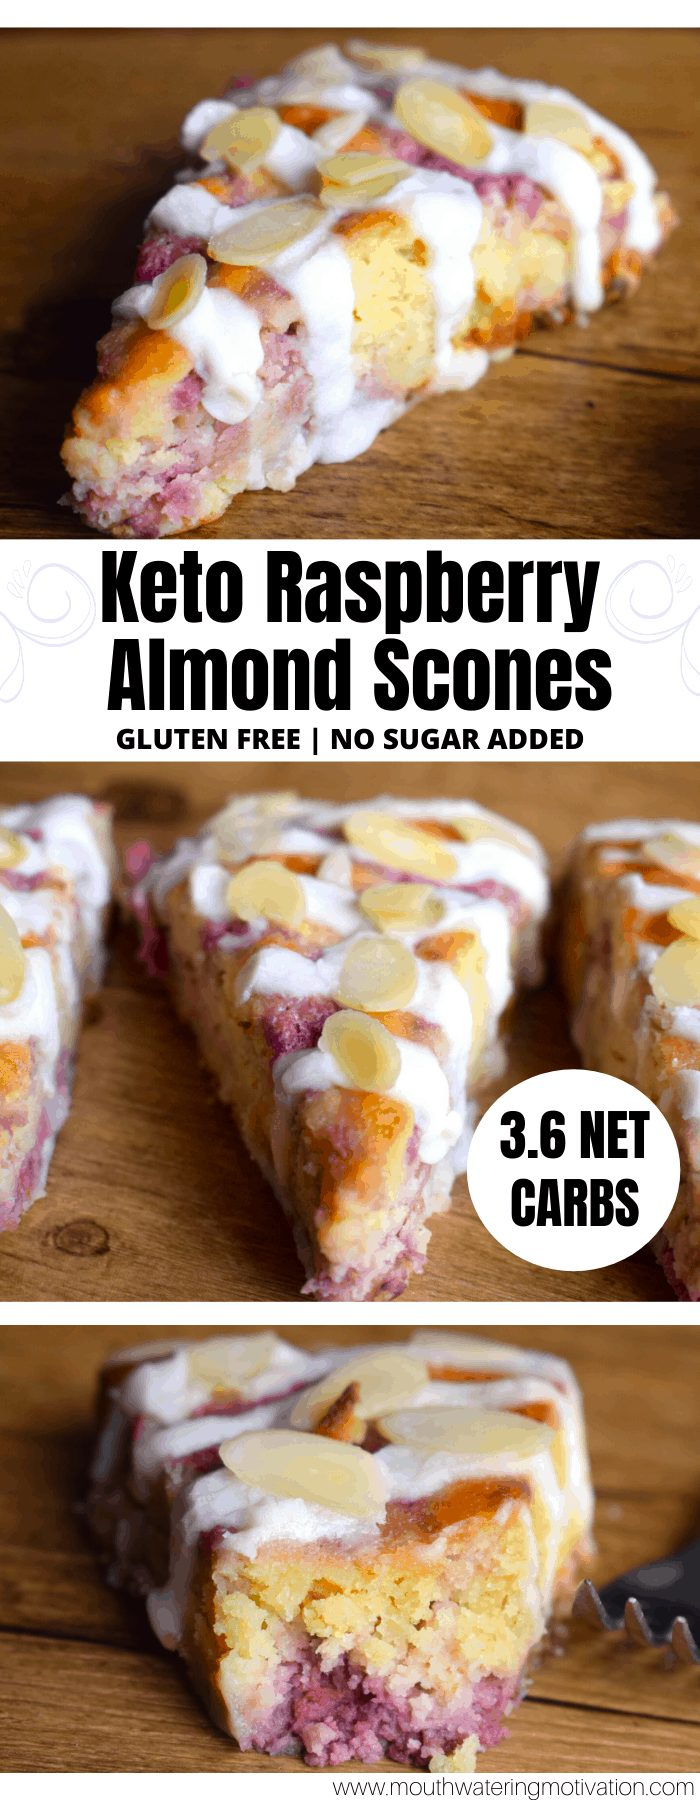 keto raspberry almond scones